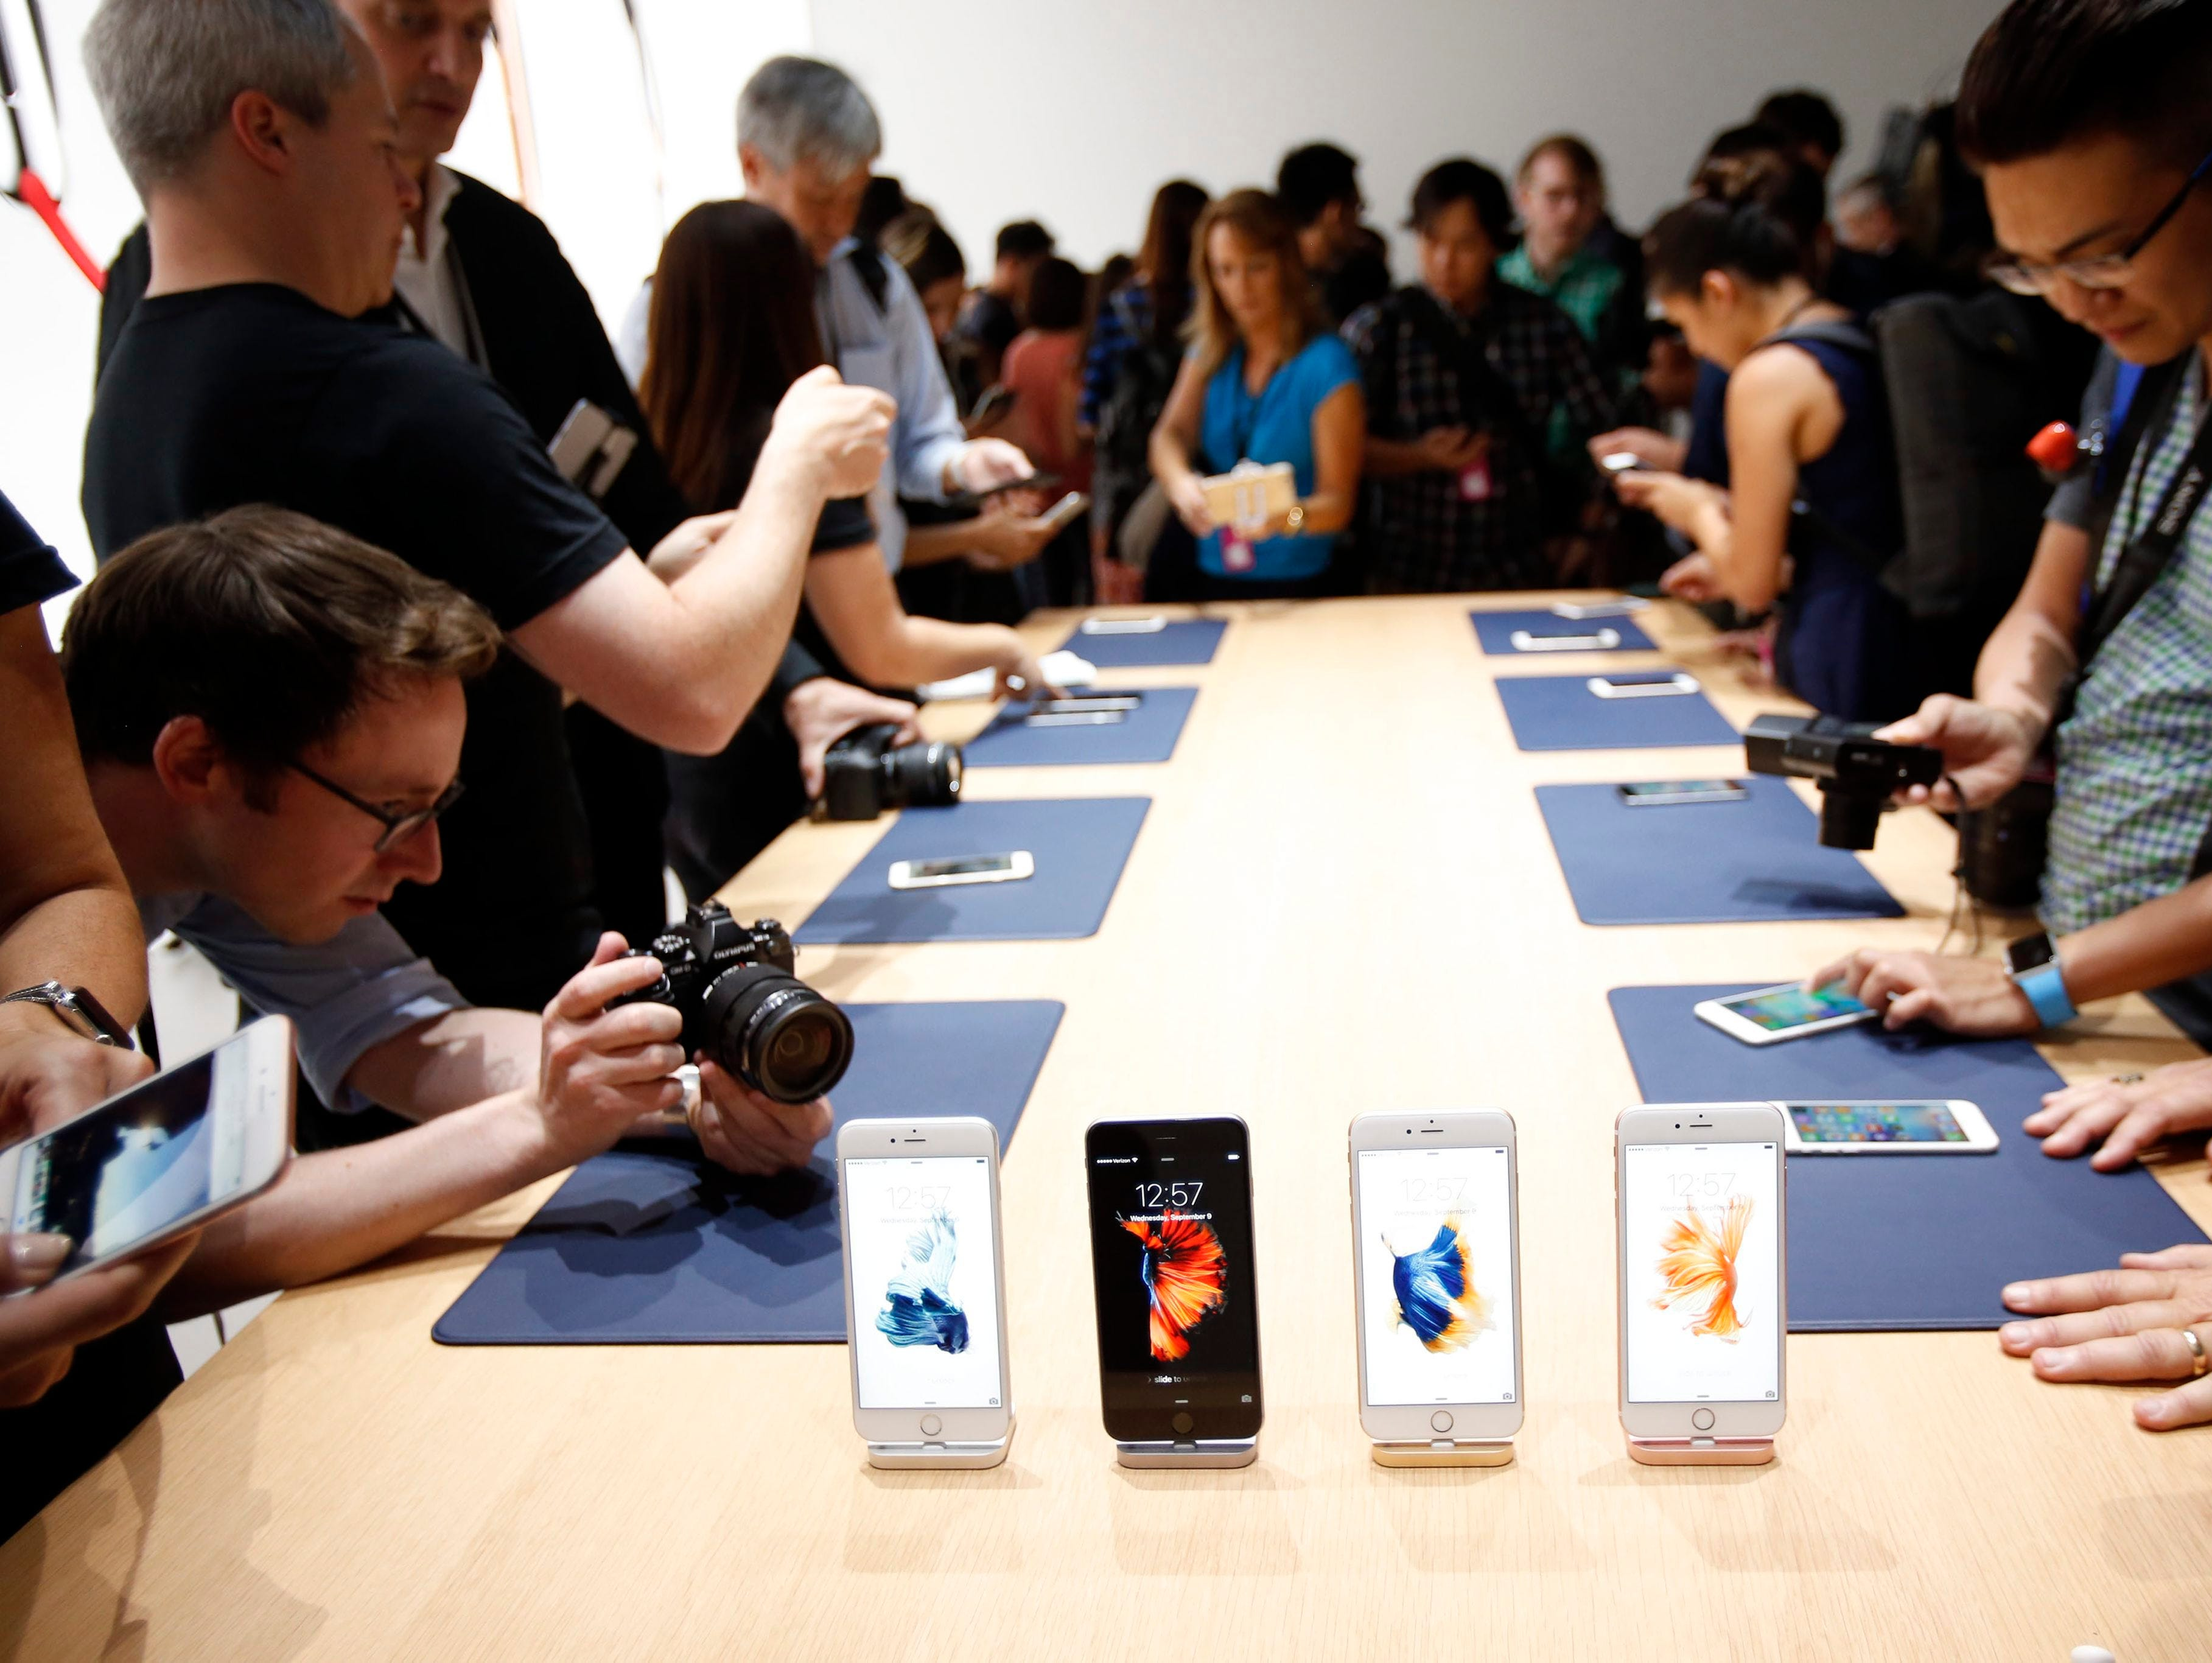 Apple's new iPhone 6S and 6S Plus phones are on display following Apple's announcement of new products.